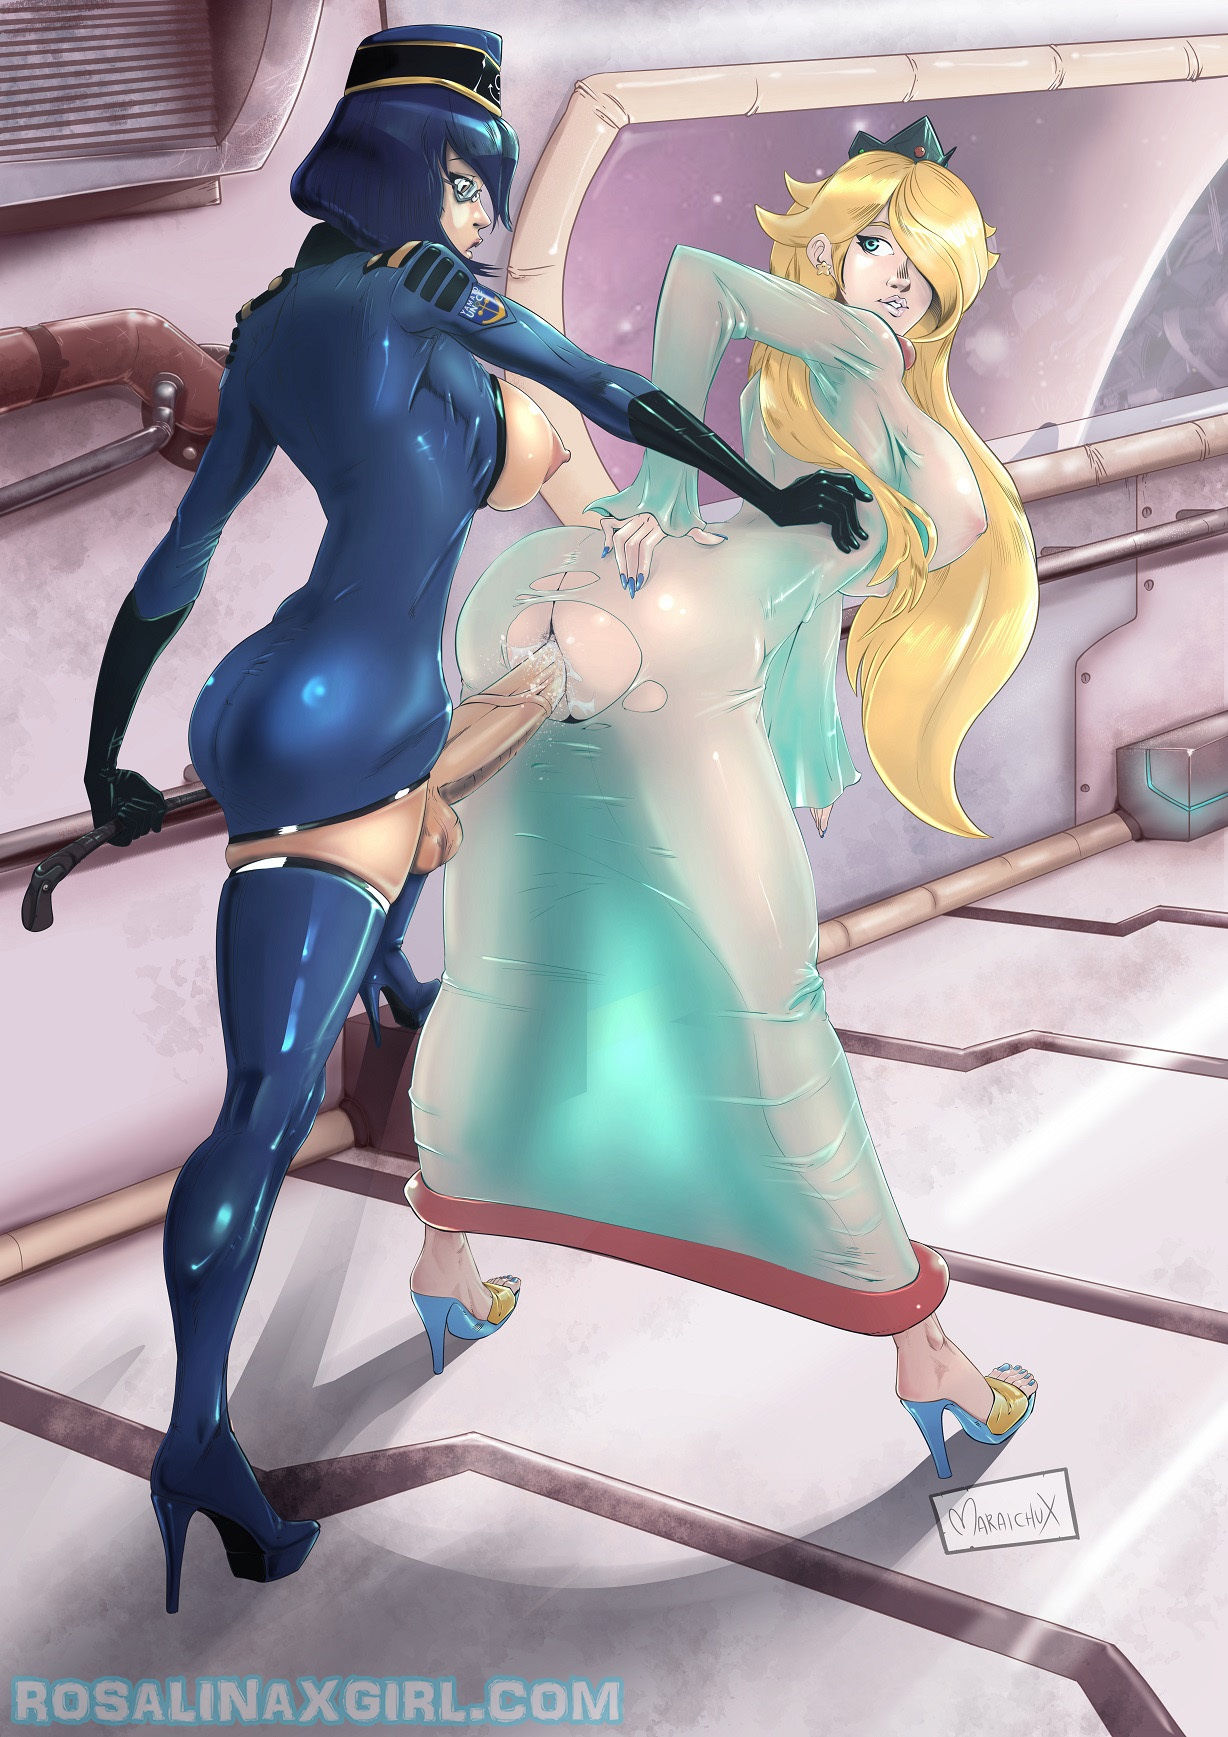 princess Rosalina nintendo mario yuri lesbian sex futa futanari hentai porn latex pvc see-through transparent dress fetish Uchuu senkan yamato Niimi kaoru high heels